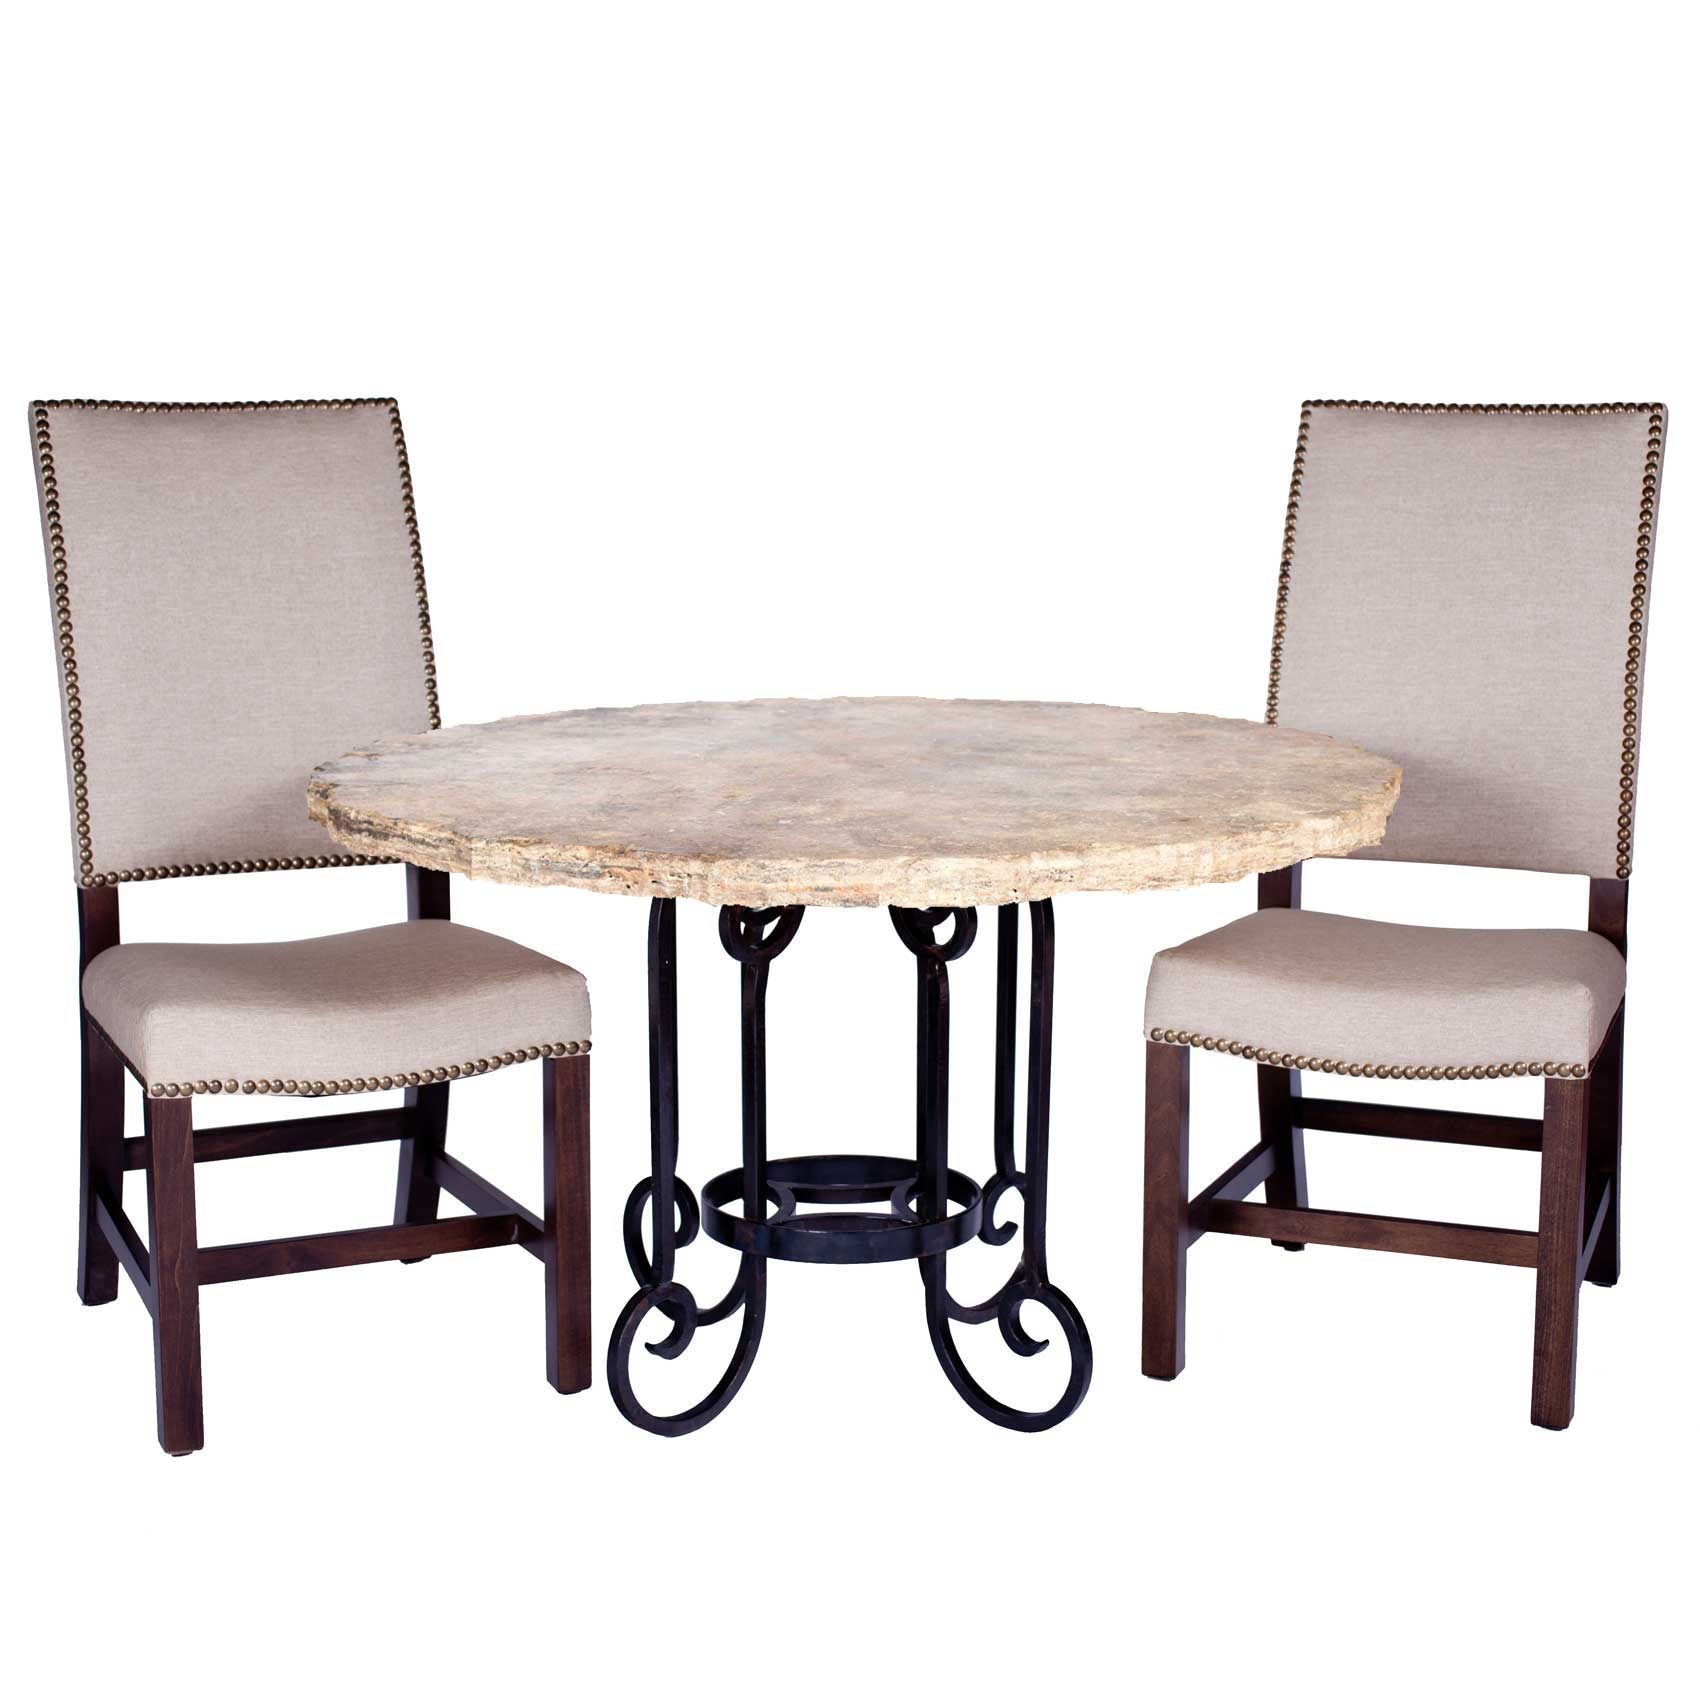 """Curled Leg Iron Dining Table with 60"""" Round Marble Top"""